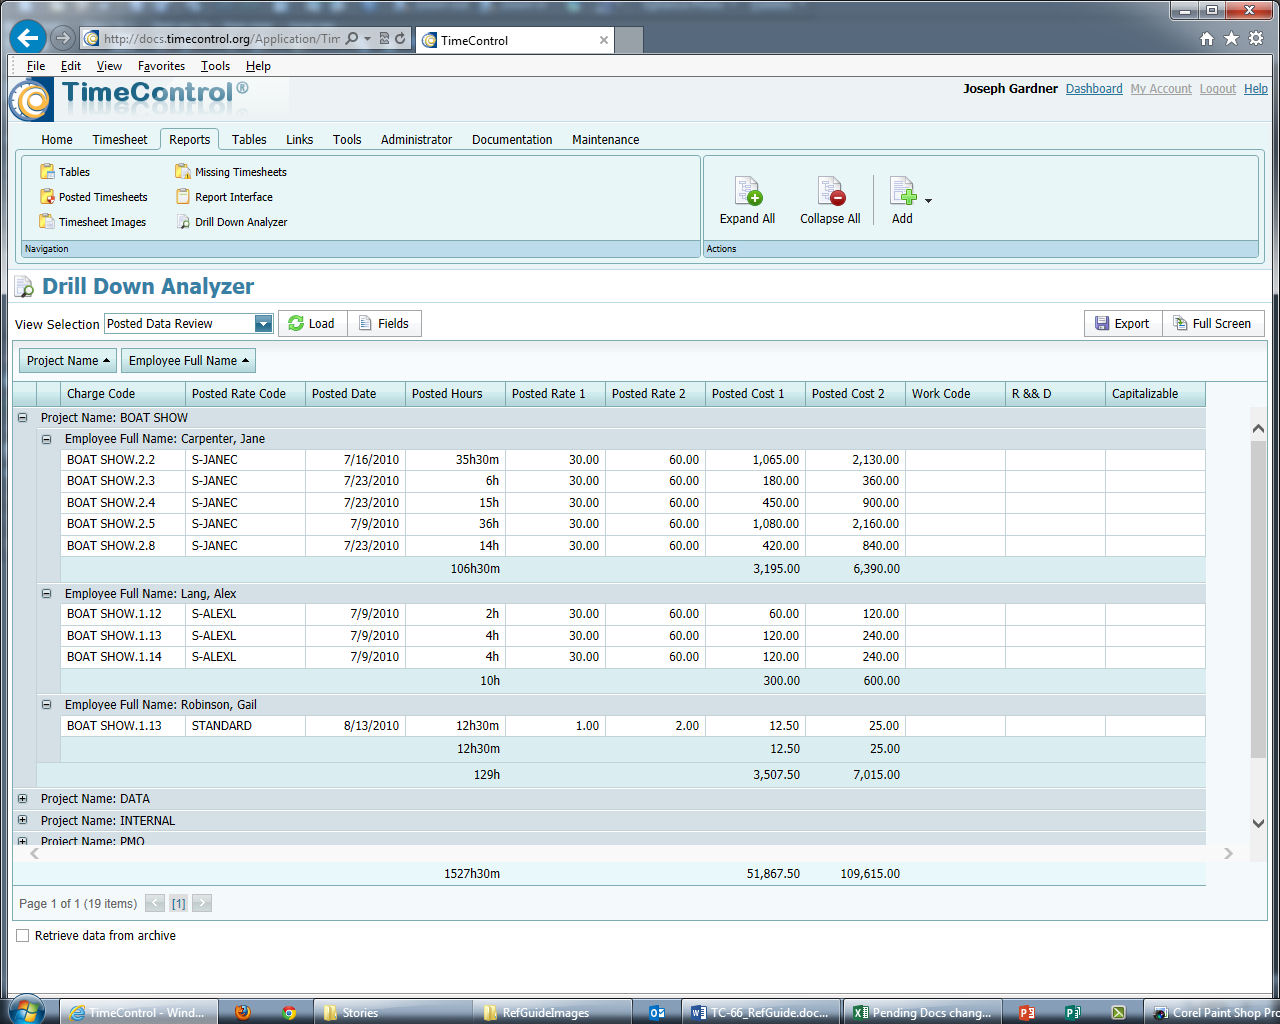 TimeControl 6.6 Timesheet